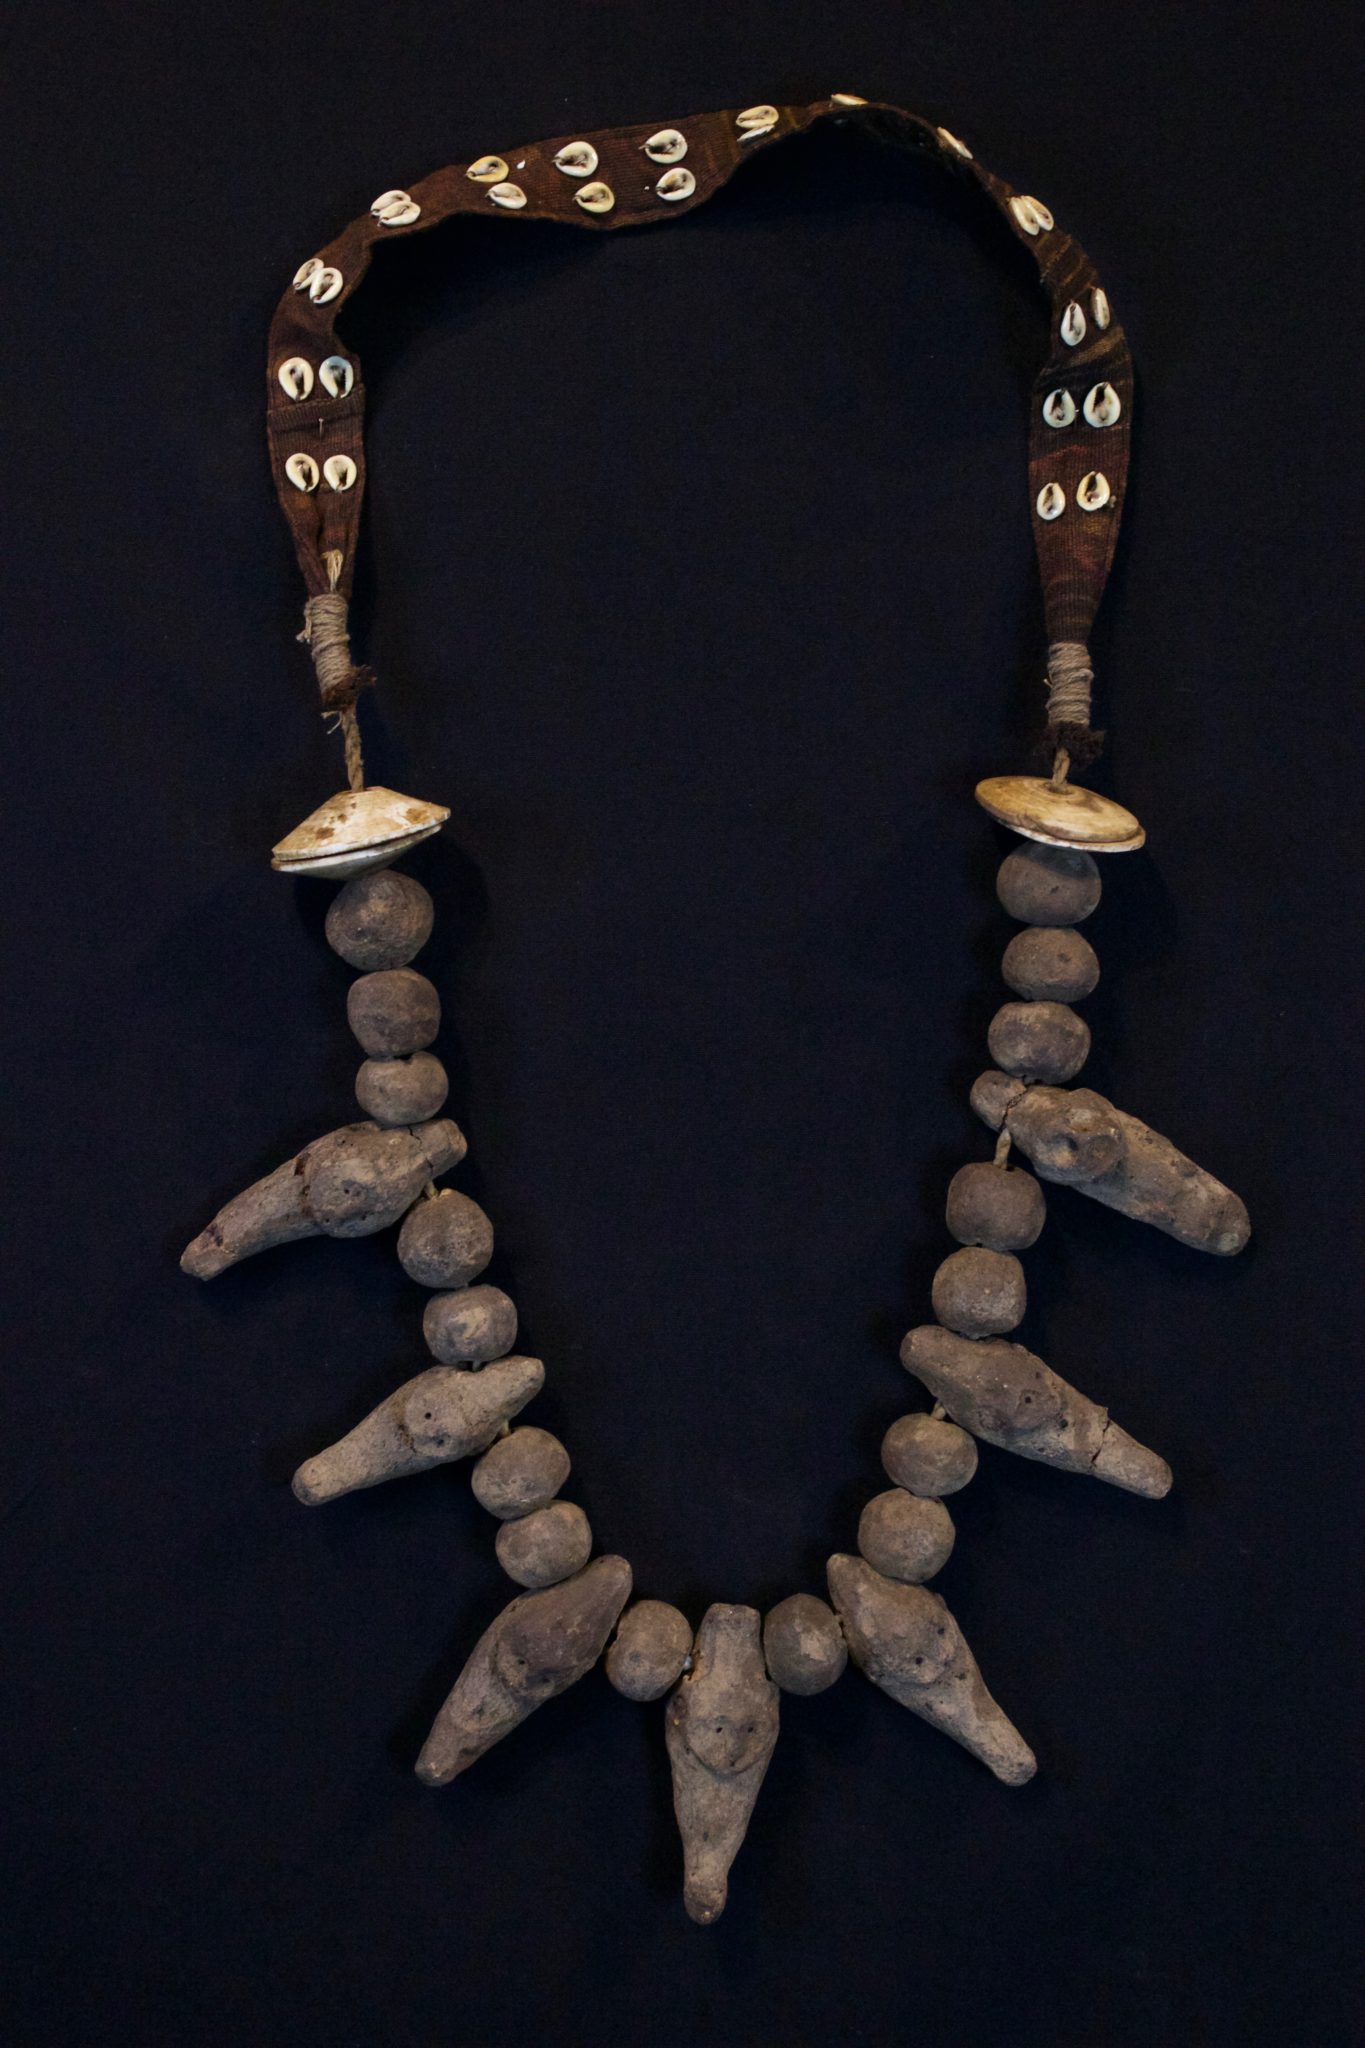 "Shaman Amulet Necklace, Timor Island, Lesser Sunda Islands, Indonesia, Early 20th c, Ceramic stone figures and beads, shell, cotton. Worn by the shaman for healing ceremonies. 21"" x 11"" x 1 ¾"" $650."